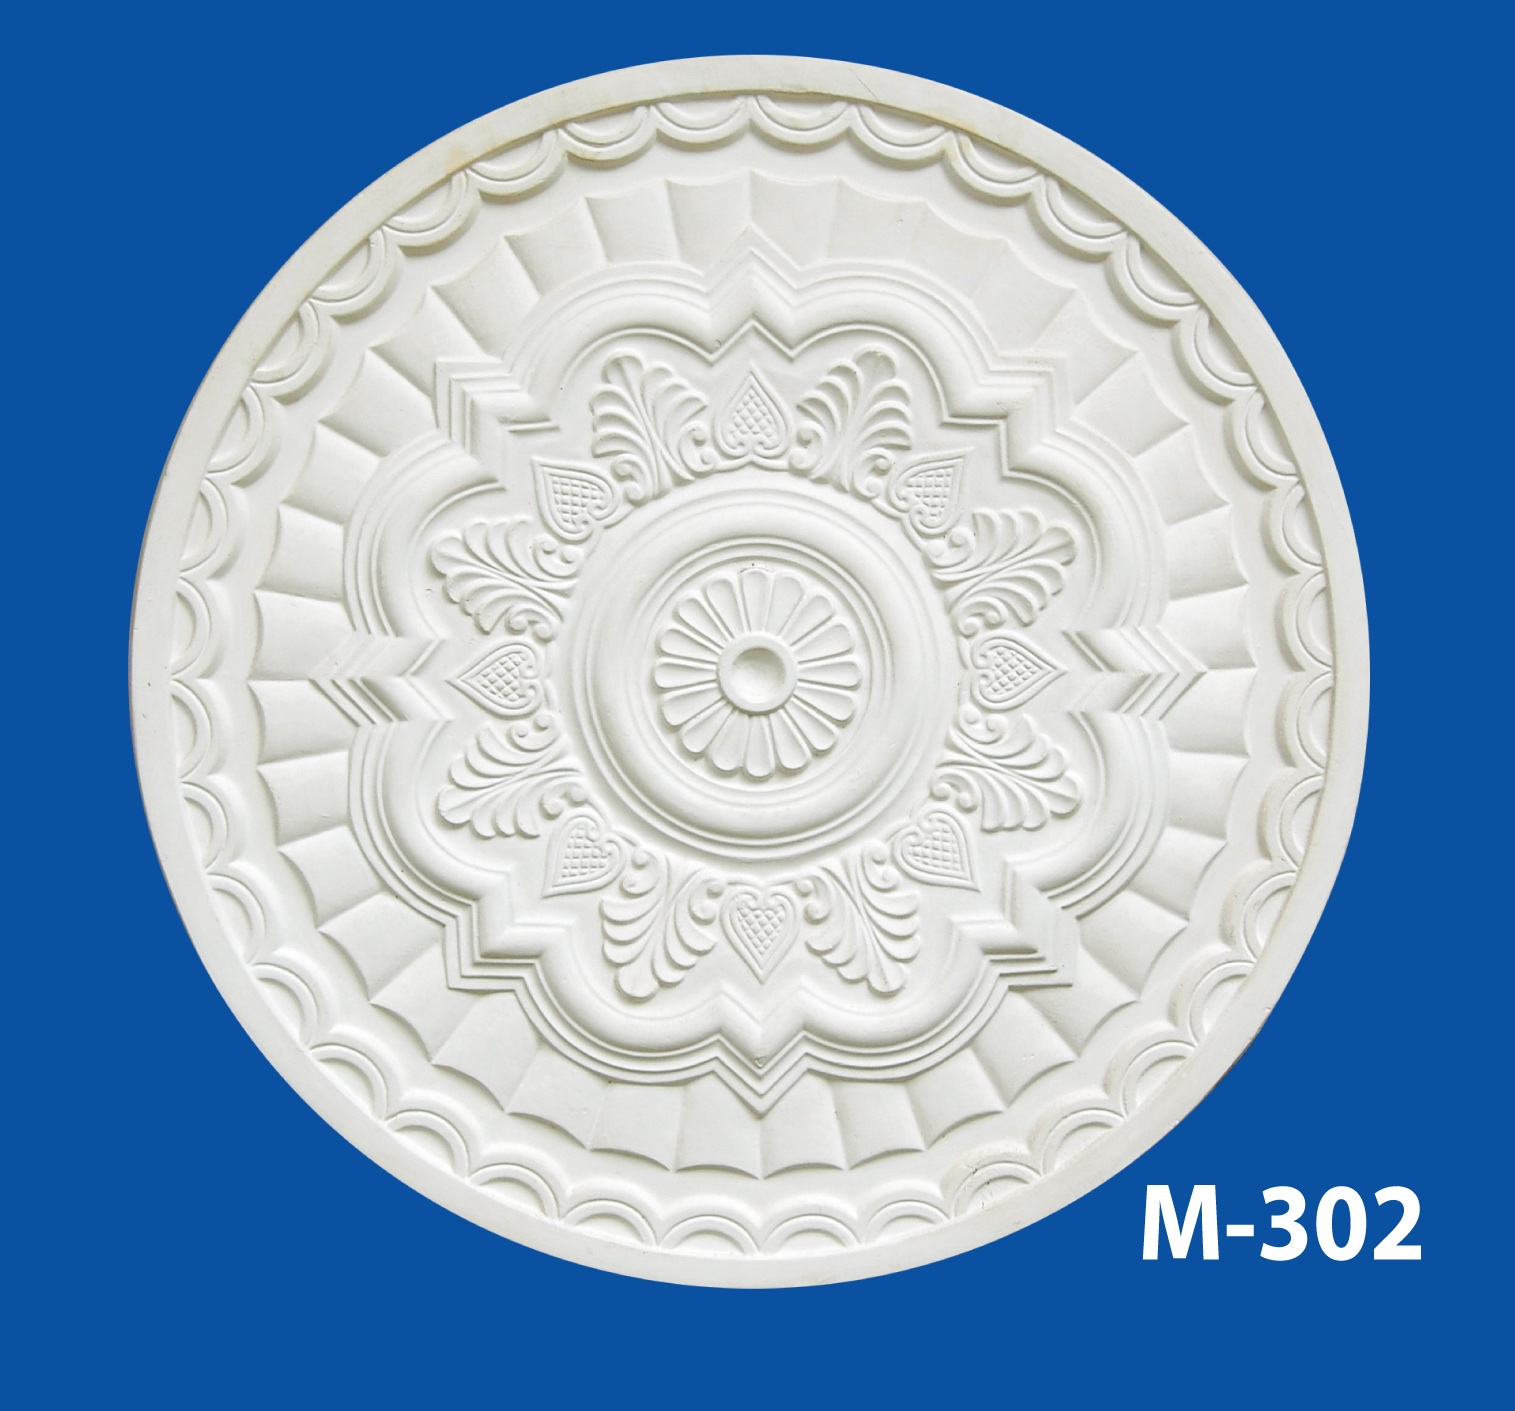 M-302 Gypsum Products Plaster Ceiling Gypsum Cornices Plaster Ceiling Mala